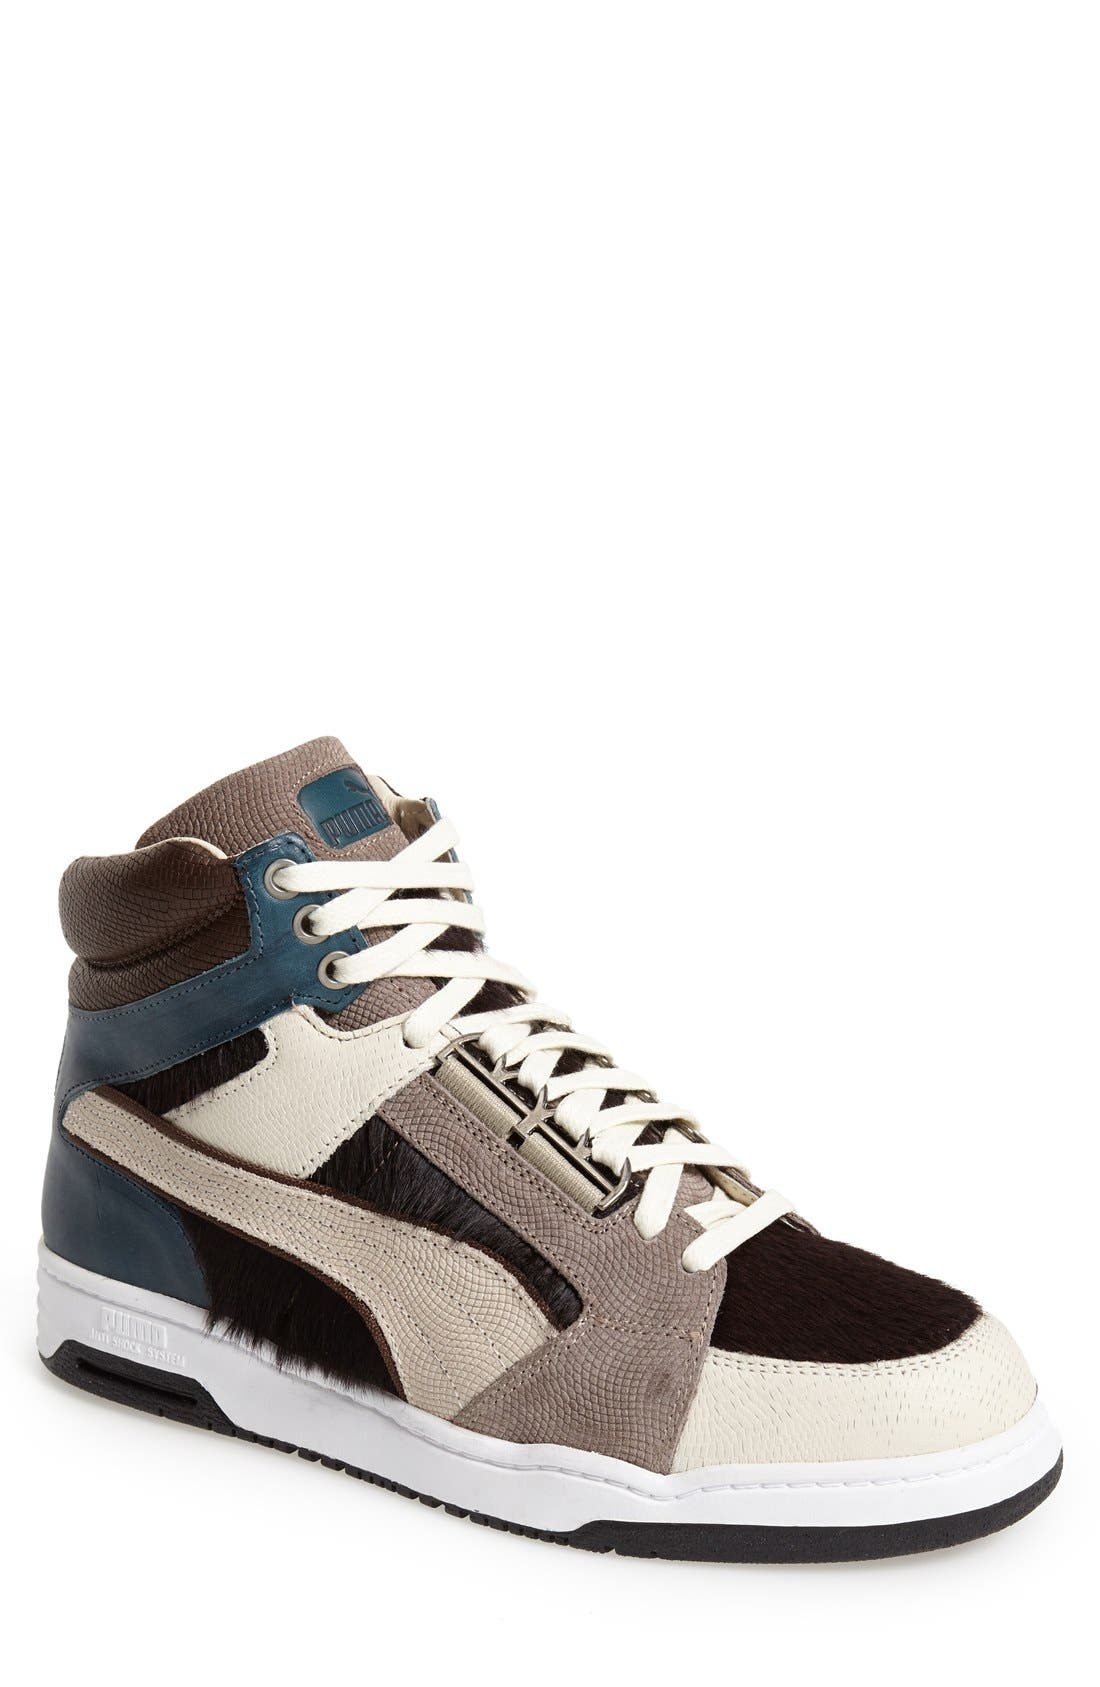 'Slipstream x Italy' Sneaker, Main, color, 060